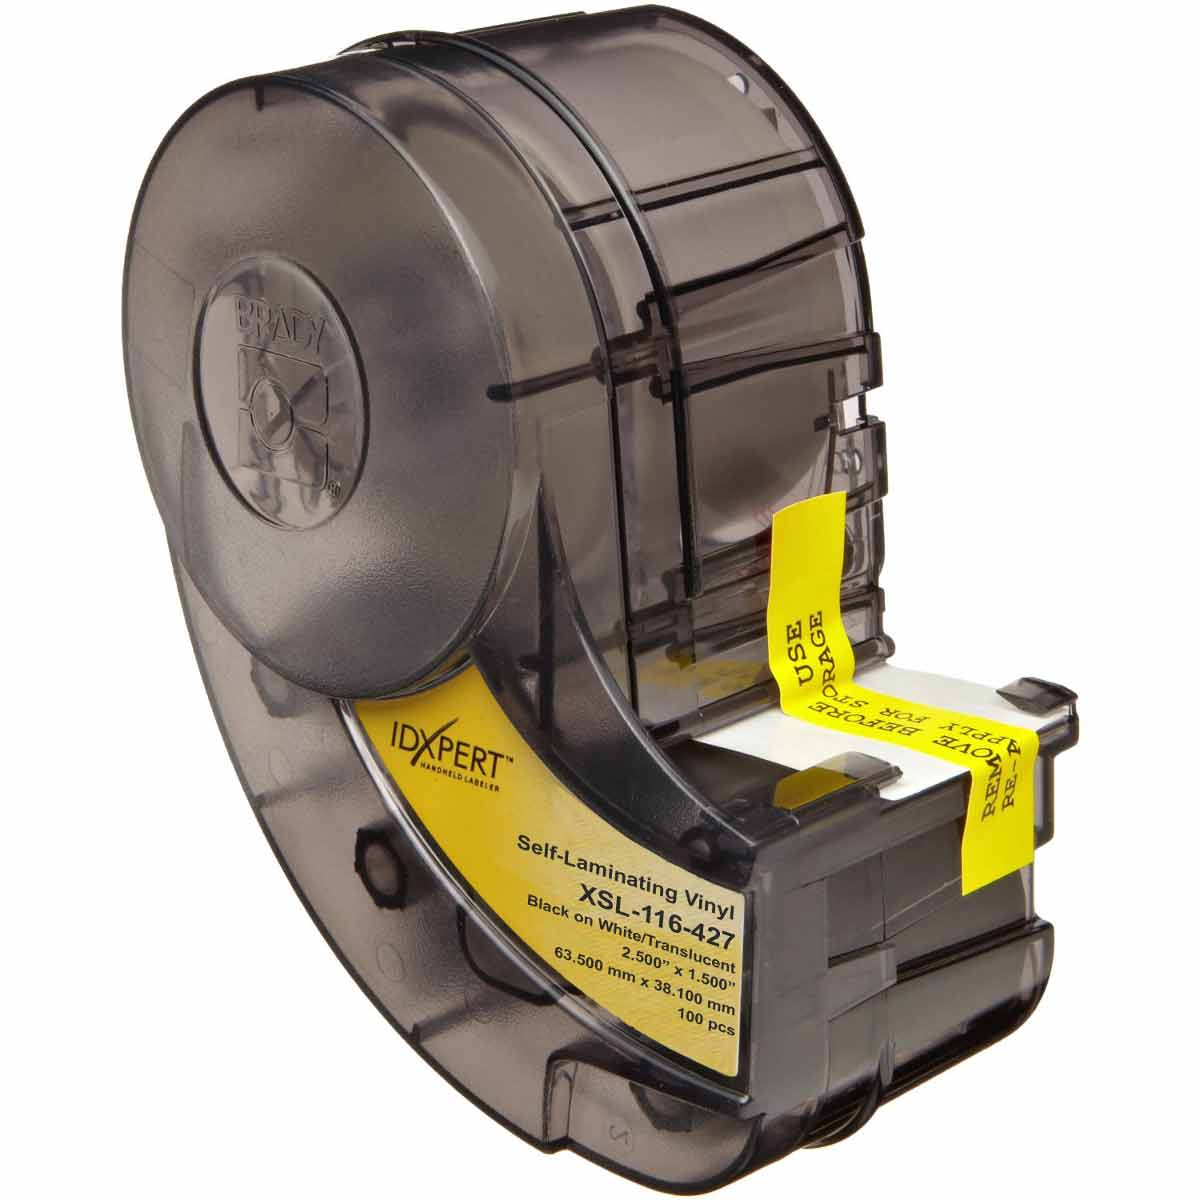 Brady Part Xsl 116 427 60345 Idxpert Series Self Laminating Home Bmp21 Hand Held Label Printer Electrical Kit Vinyl Wire And Cable Labels